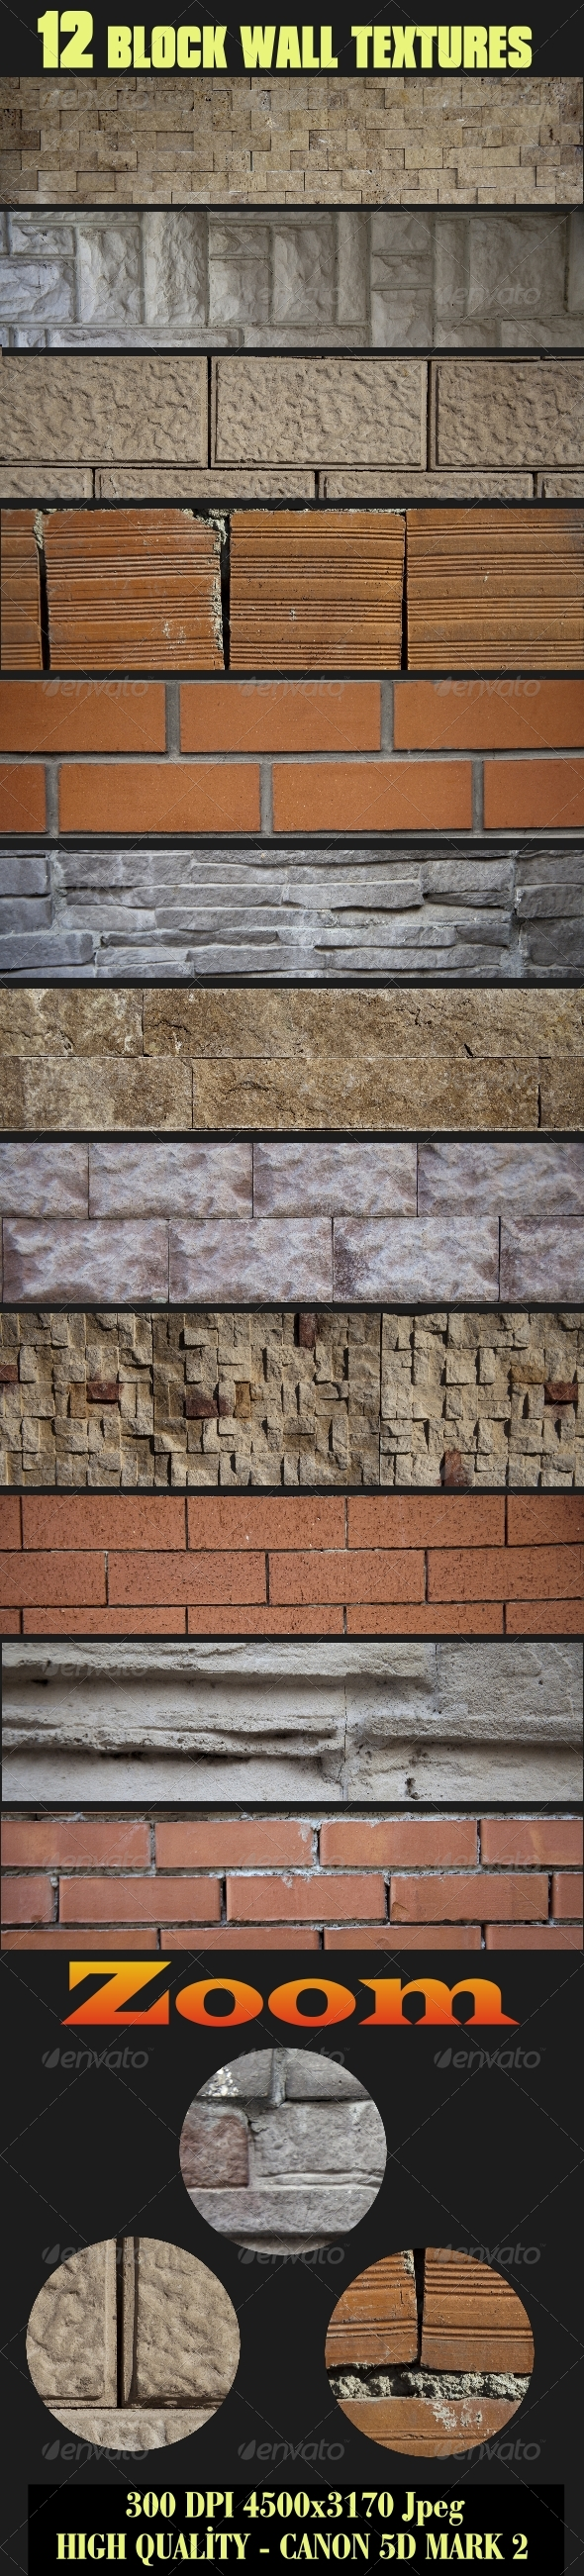 12 High Quality Block Wall Textures - Wood Textures